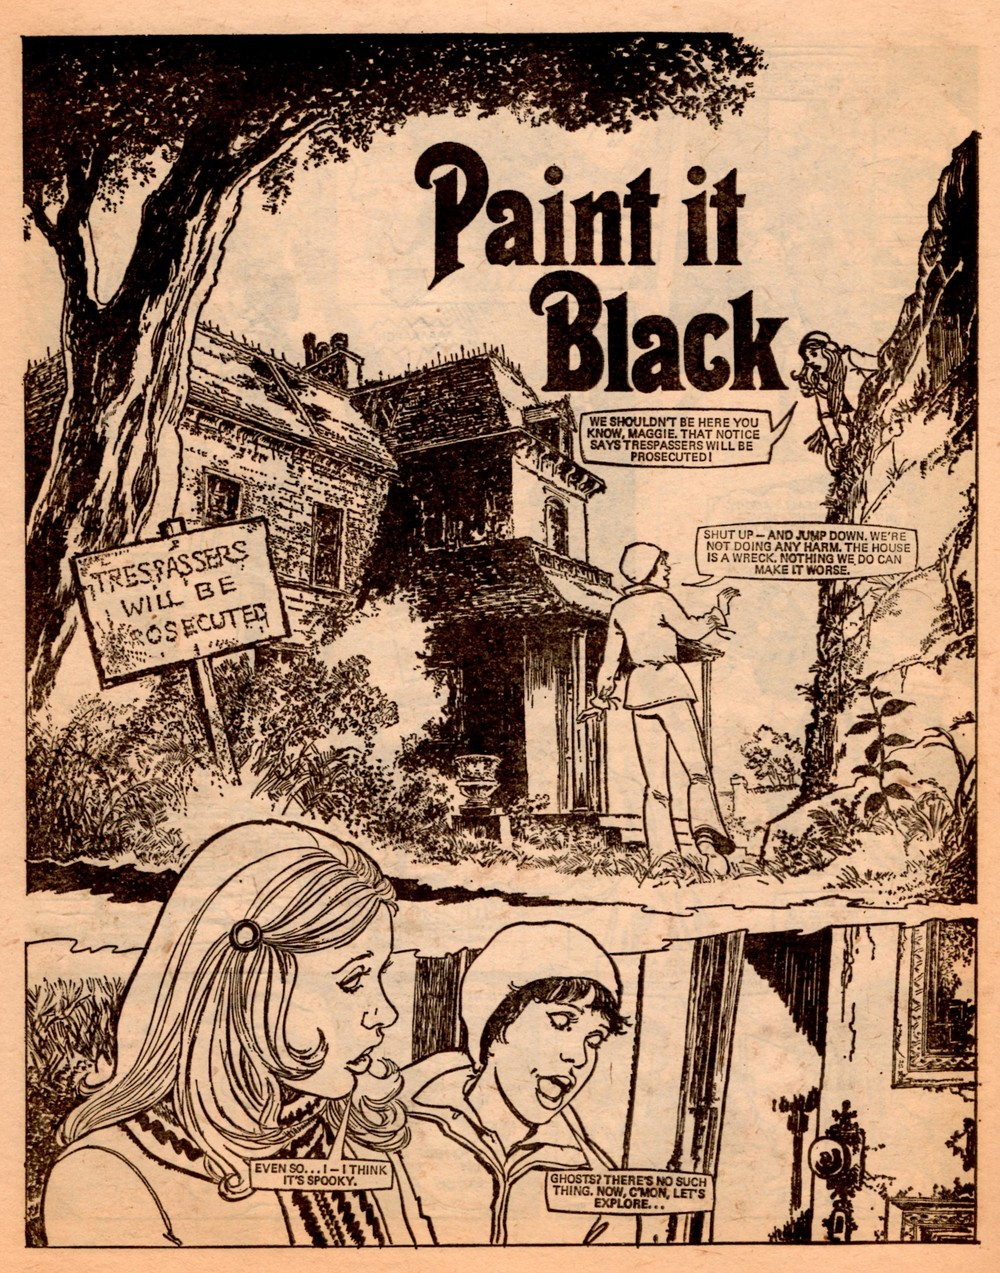 Paint it Black: Pat Mills (writer), Brian Delaney (artist)